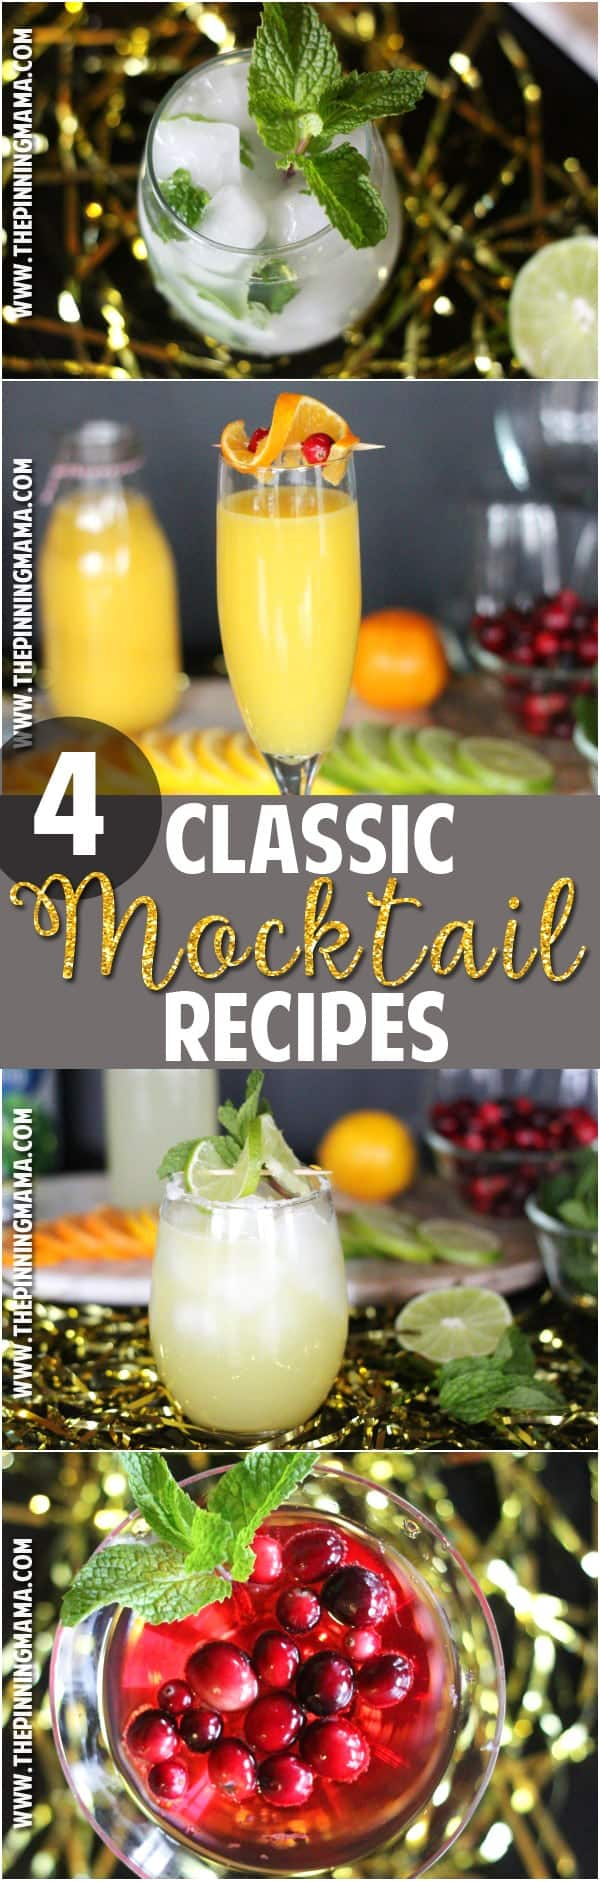 4 virgin drink recipes - Perfect for those that don't drink to have a fun and festive non-alcoholic drink option at a party.